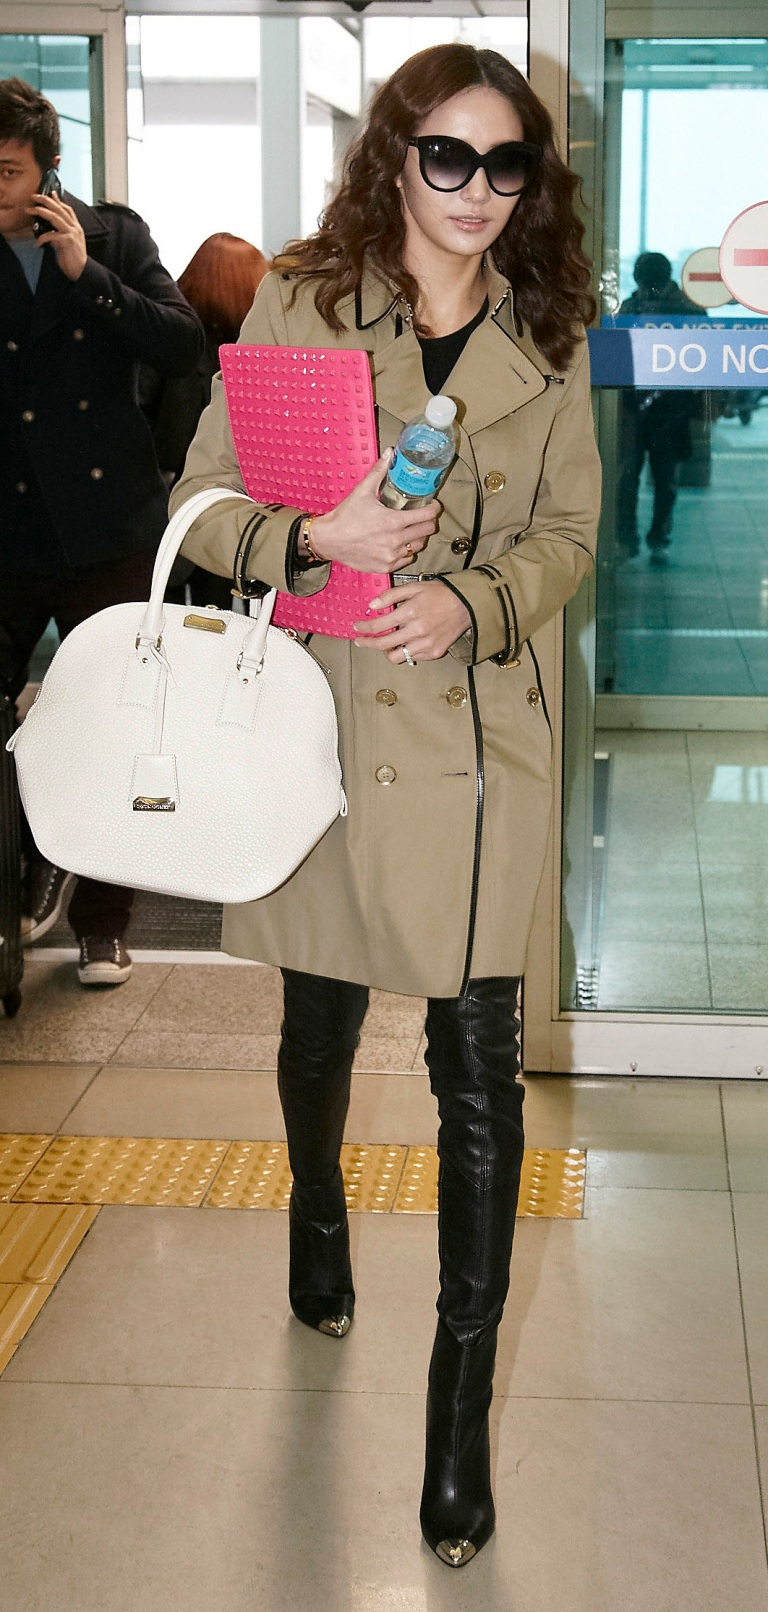 Korean_actress_Han_Chae_Young_wearing_Burberry_trench_coat_and_Orchard_bag_in_Incheon_International_Airport_in_31,_Jan,_2013_-2